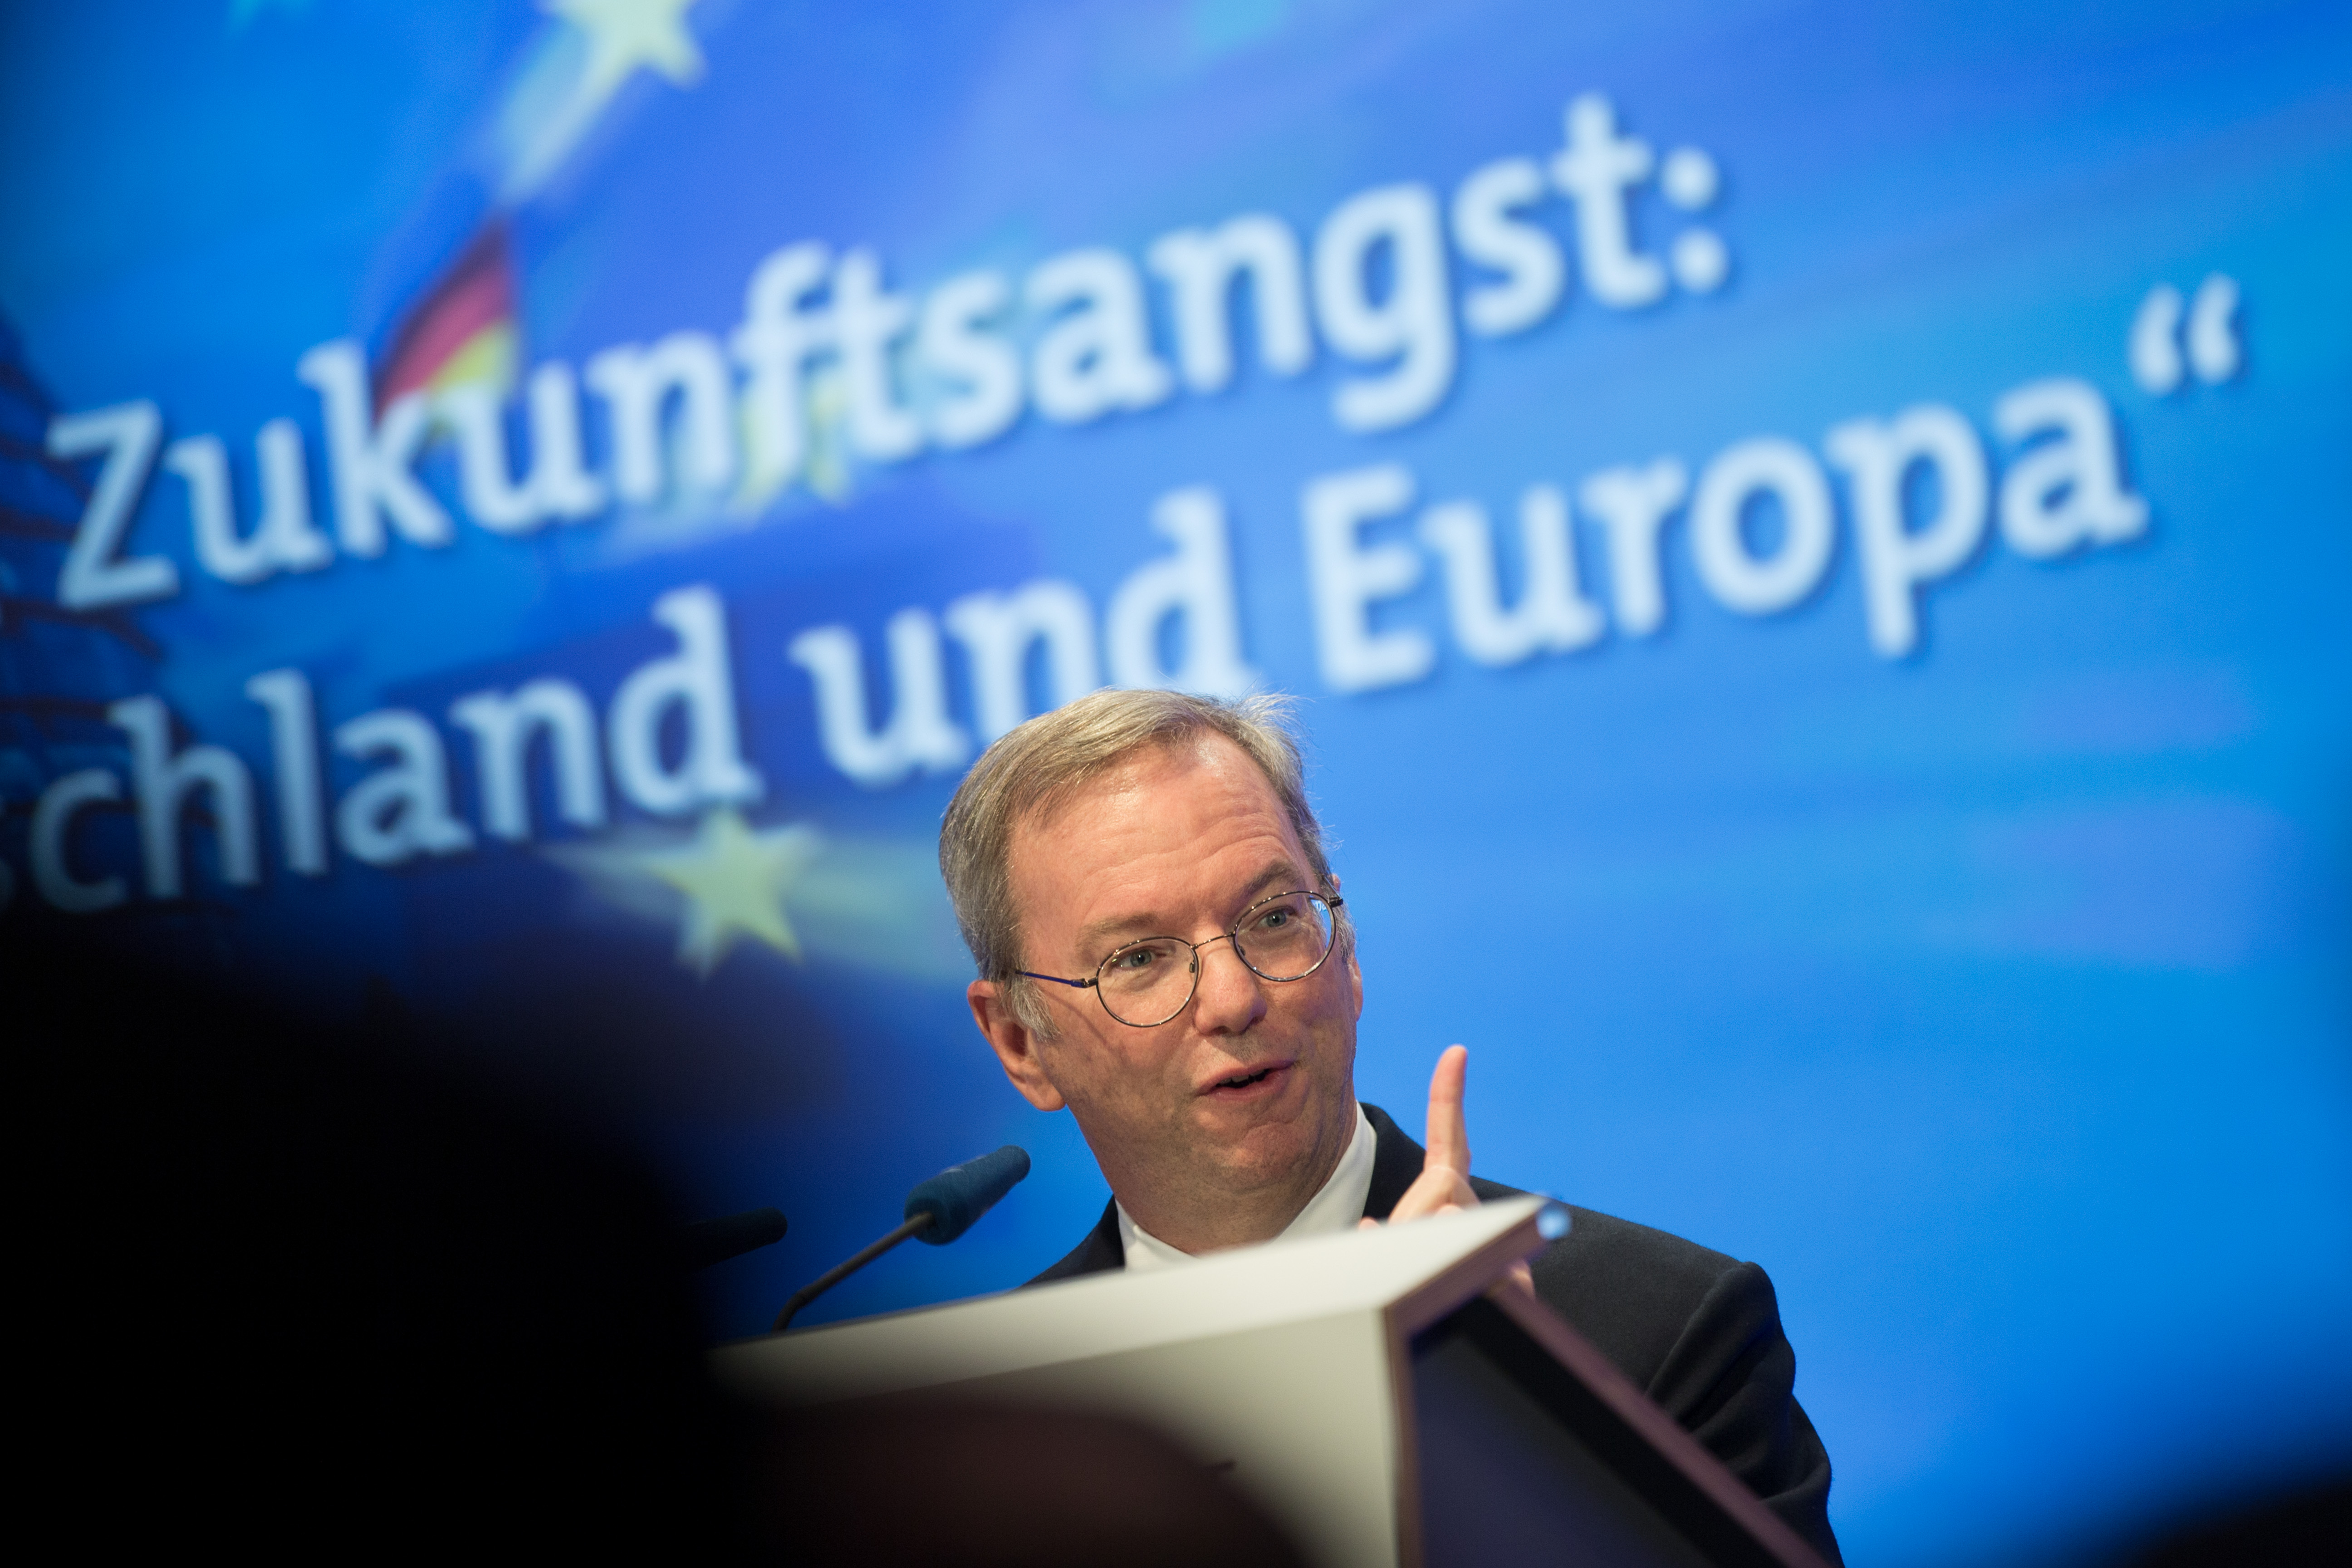 """Eric Schmidt speaks at a conference with the word """"Europa"""" behind him."""